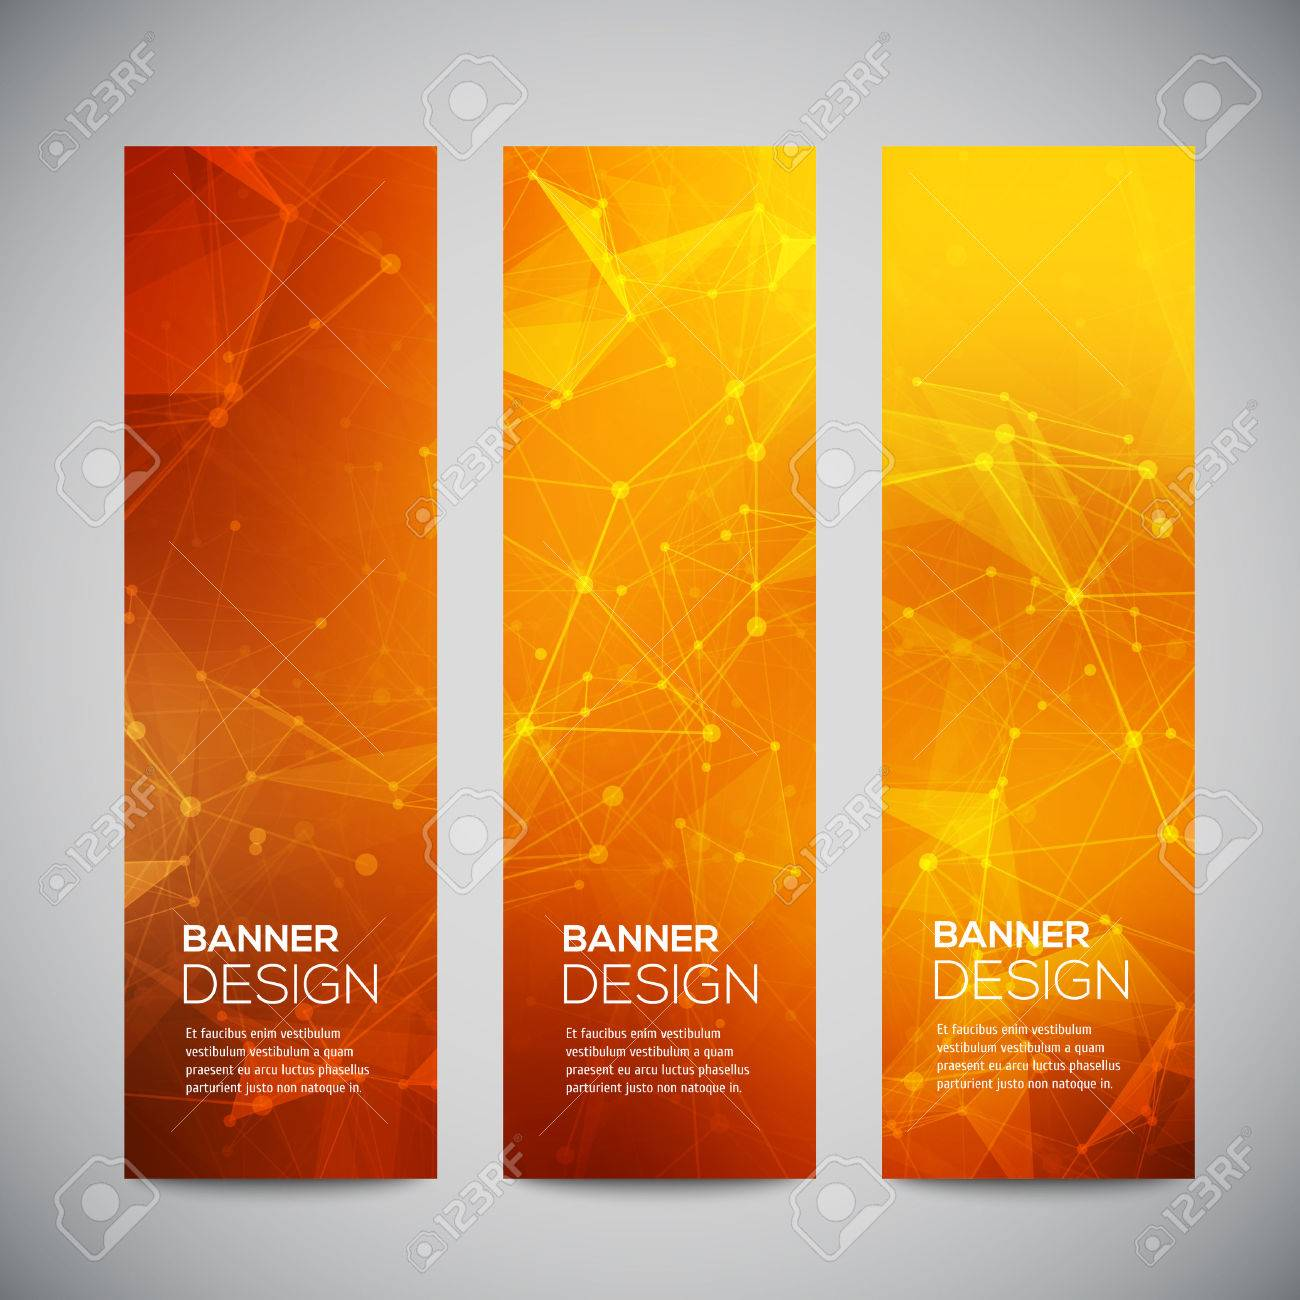 Vector vertical banners set with polygonal abstract shapes, with circles, lines, triangles. - 41161542